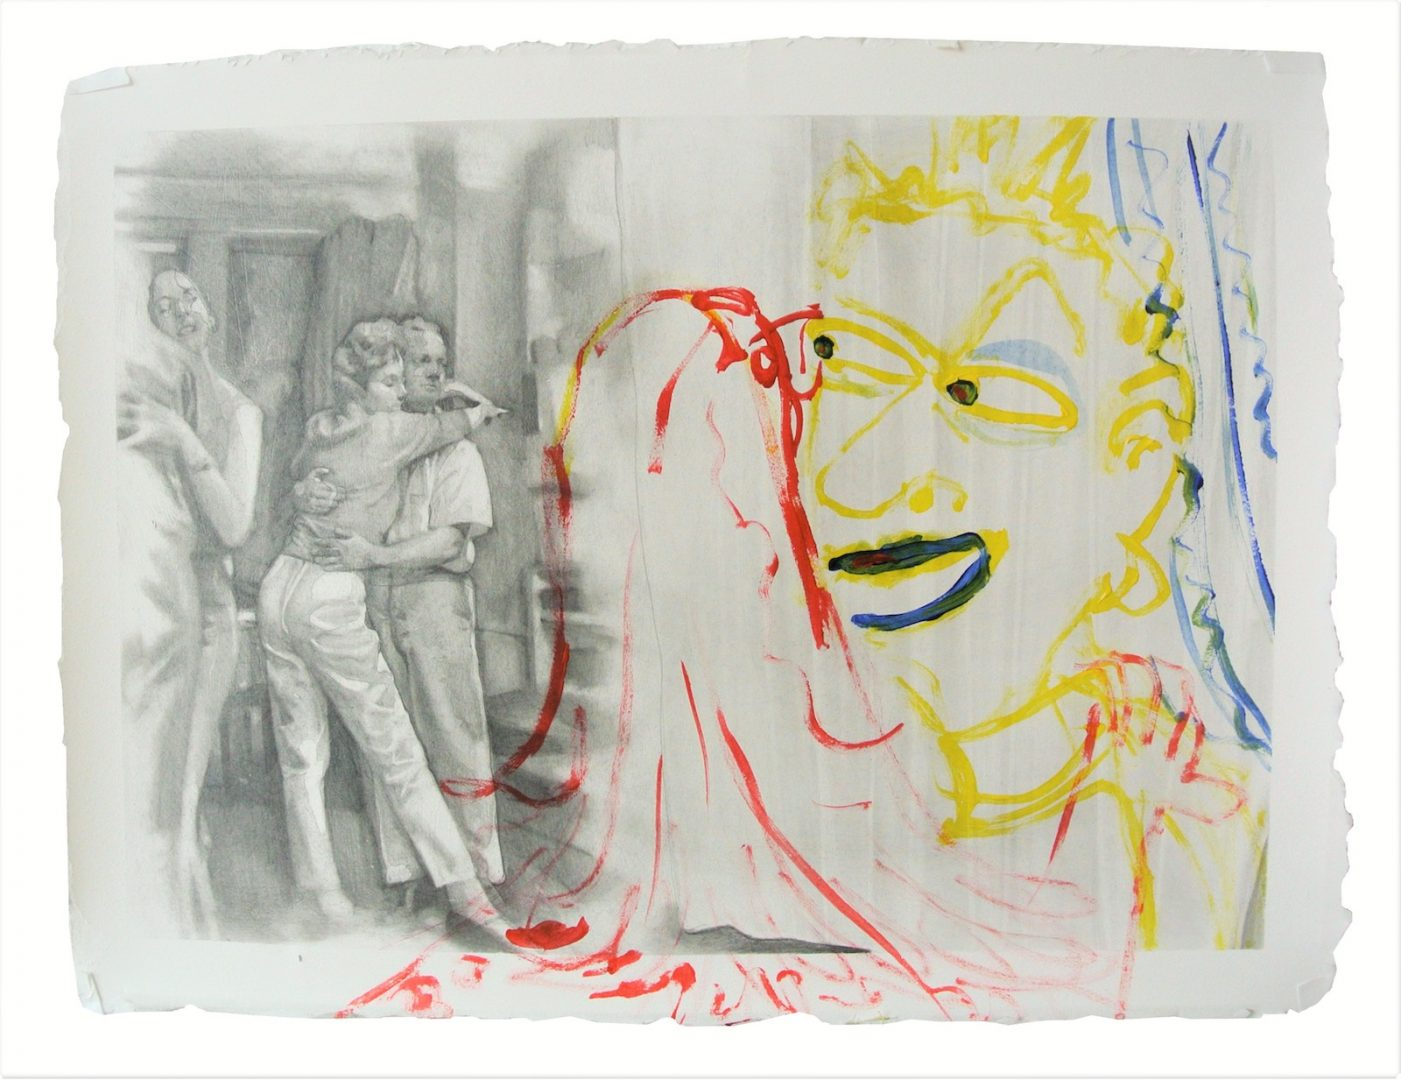 aris Giachoustidis, Love in the first sight 2019, 32x42cm, pencil and acryl on paper